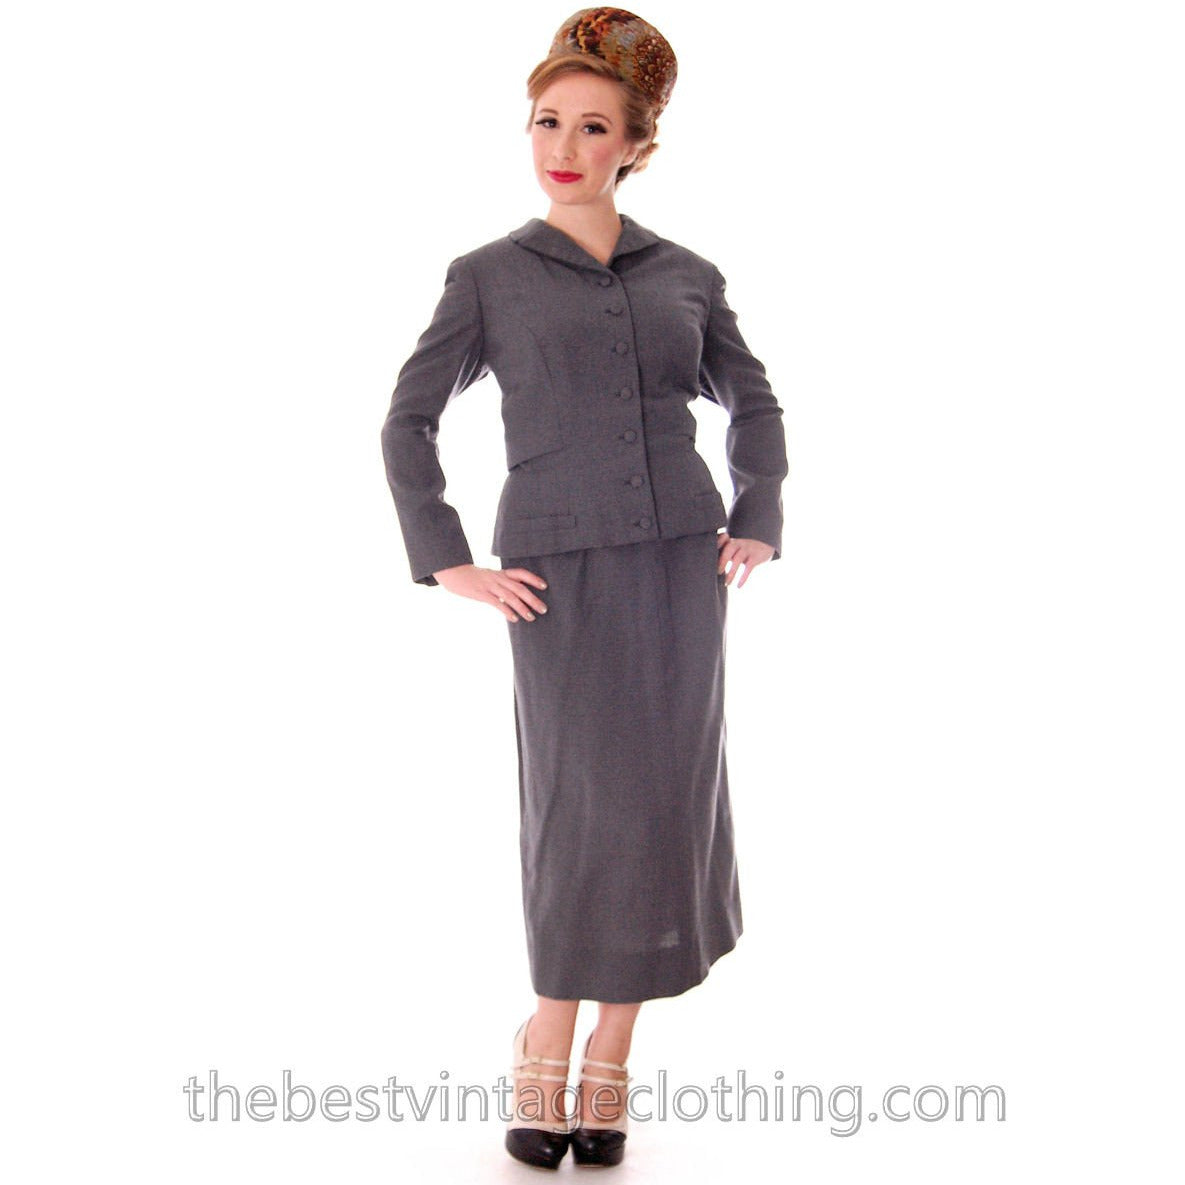 Jablow Suit Vintage 1950s Gray Womens Day Suit Damaged Costume 40-27-41 - The Best Vintage Clothing  - 1